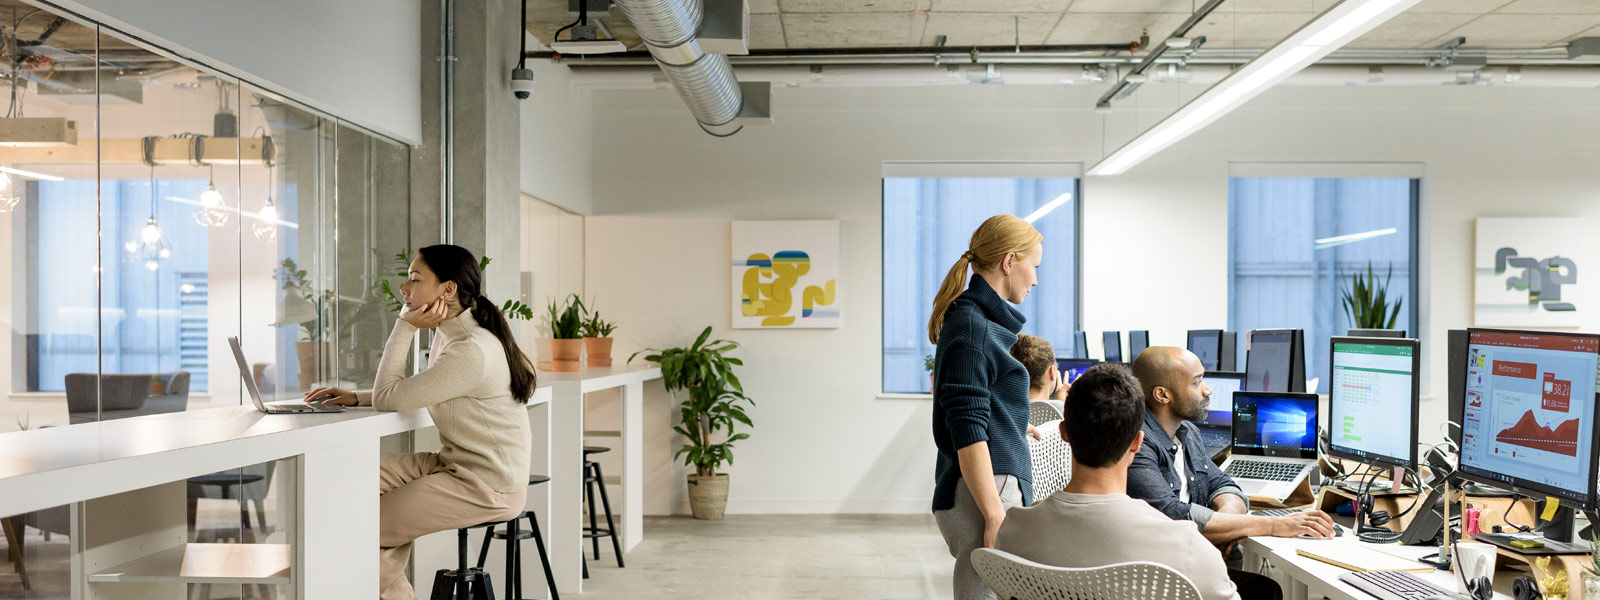 People collaborate in open office space